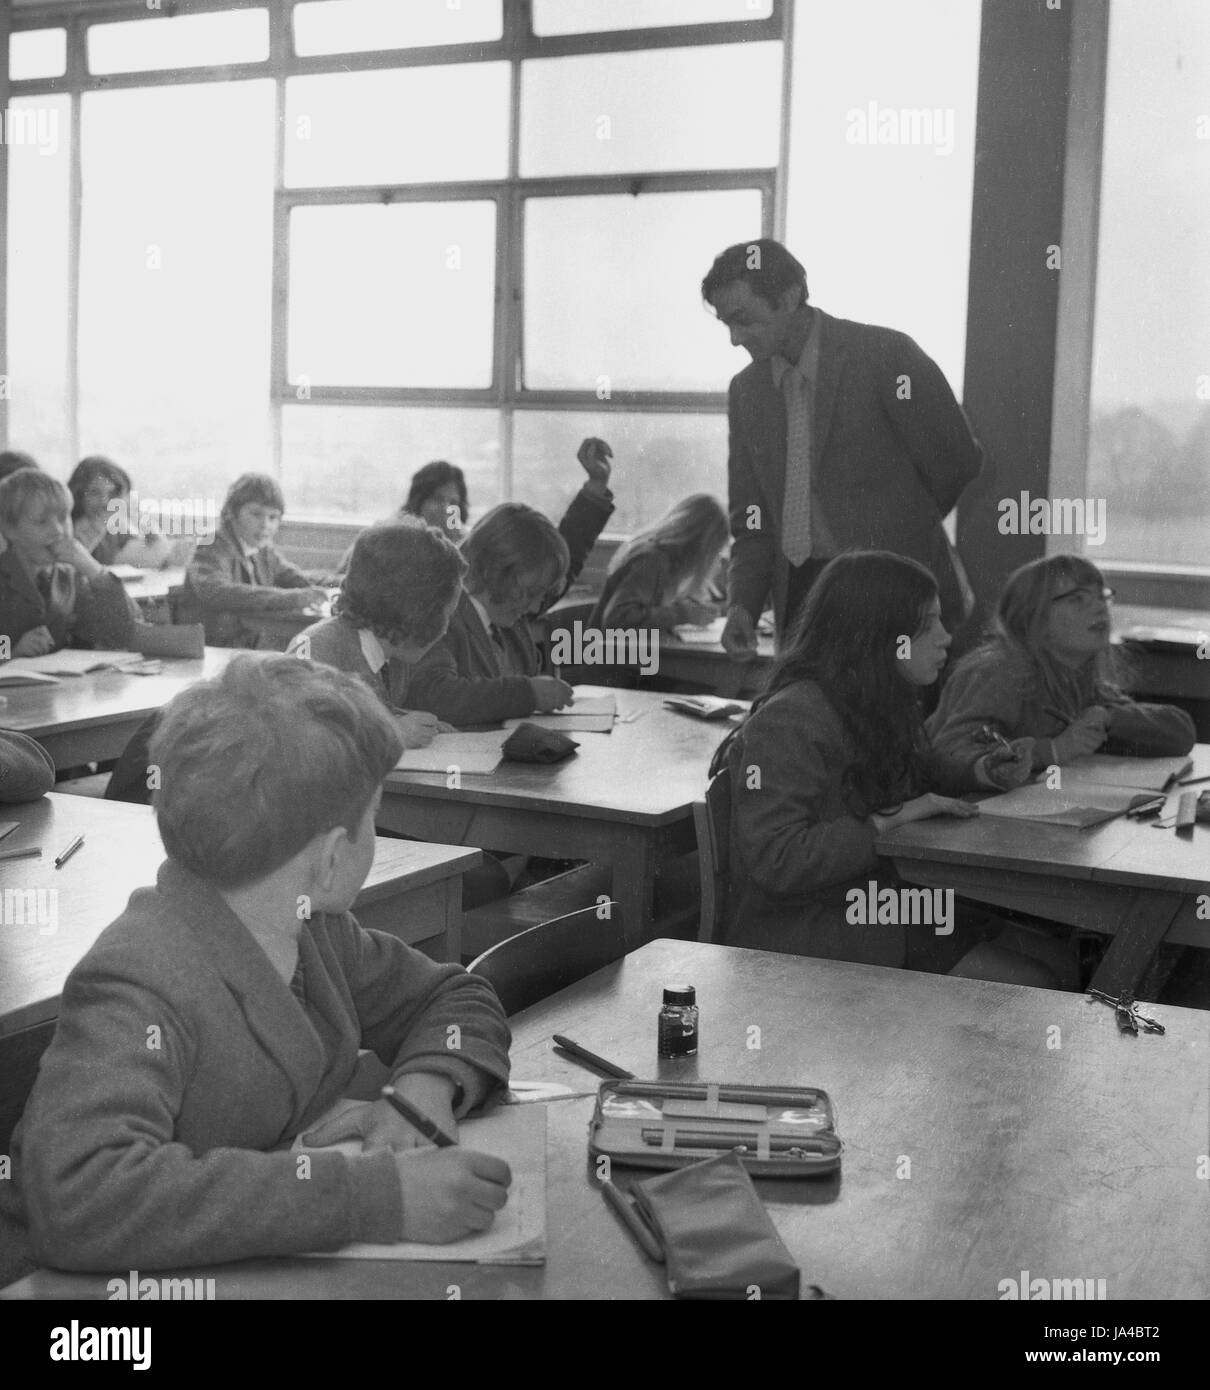 1960s, historical, boys and girls in a classroom at Sedgehill School, Lewisham, South London, England, UK, opened - Stock Image